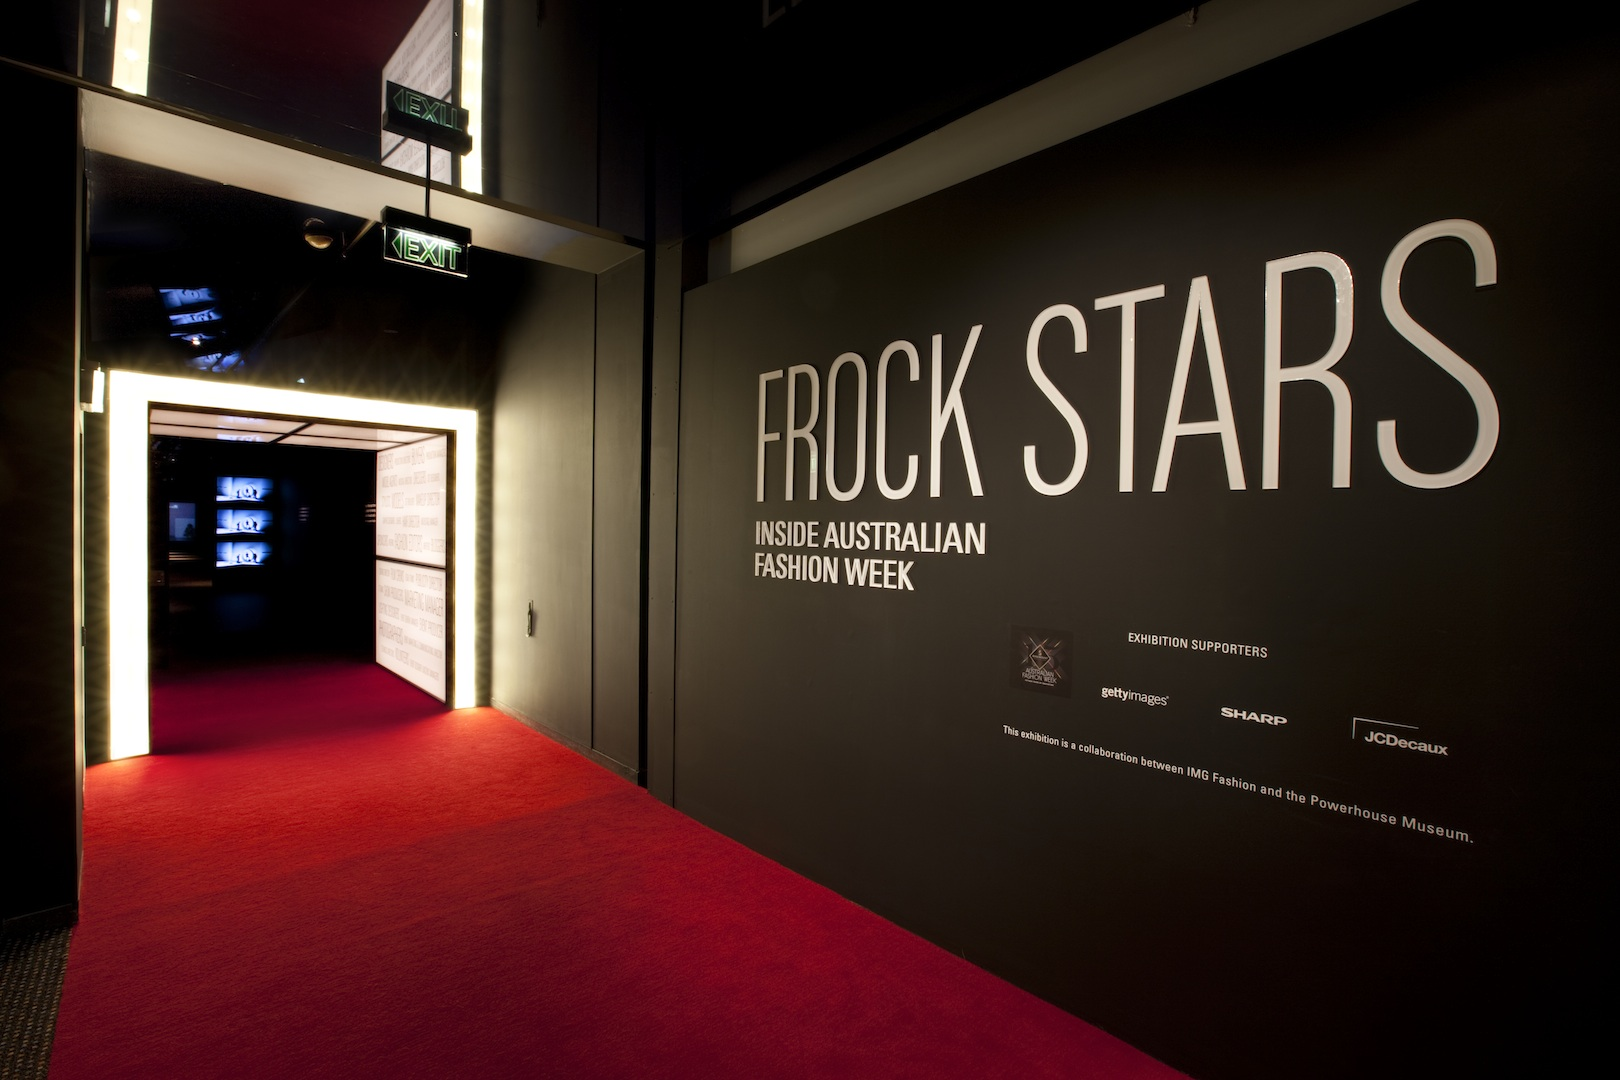 Entrance, Frock stars-  Inside Australian Fashion Week Photo: Geoff Friend, Powerhouse Museum